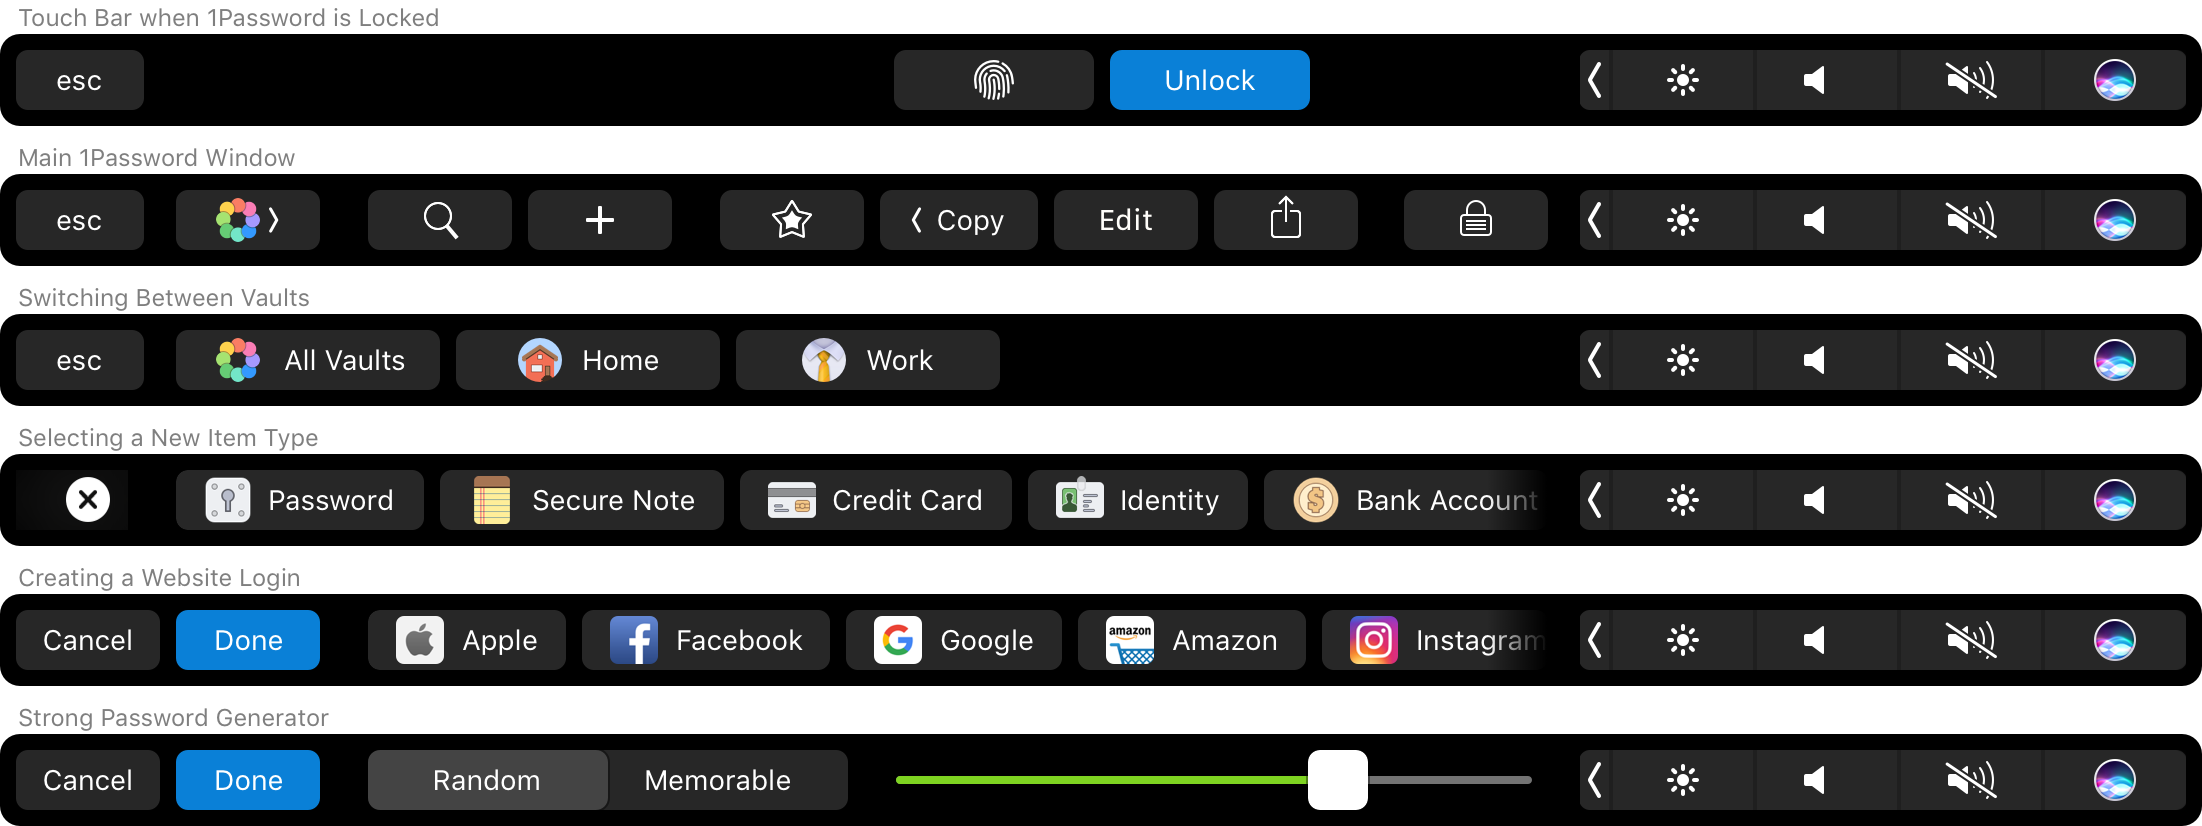 Touch Bar for 1Password